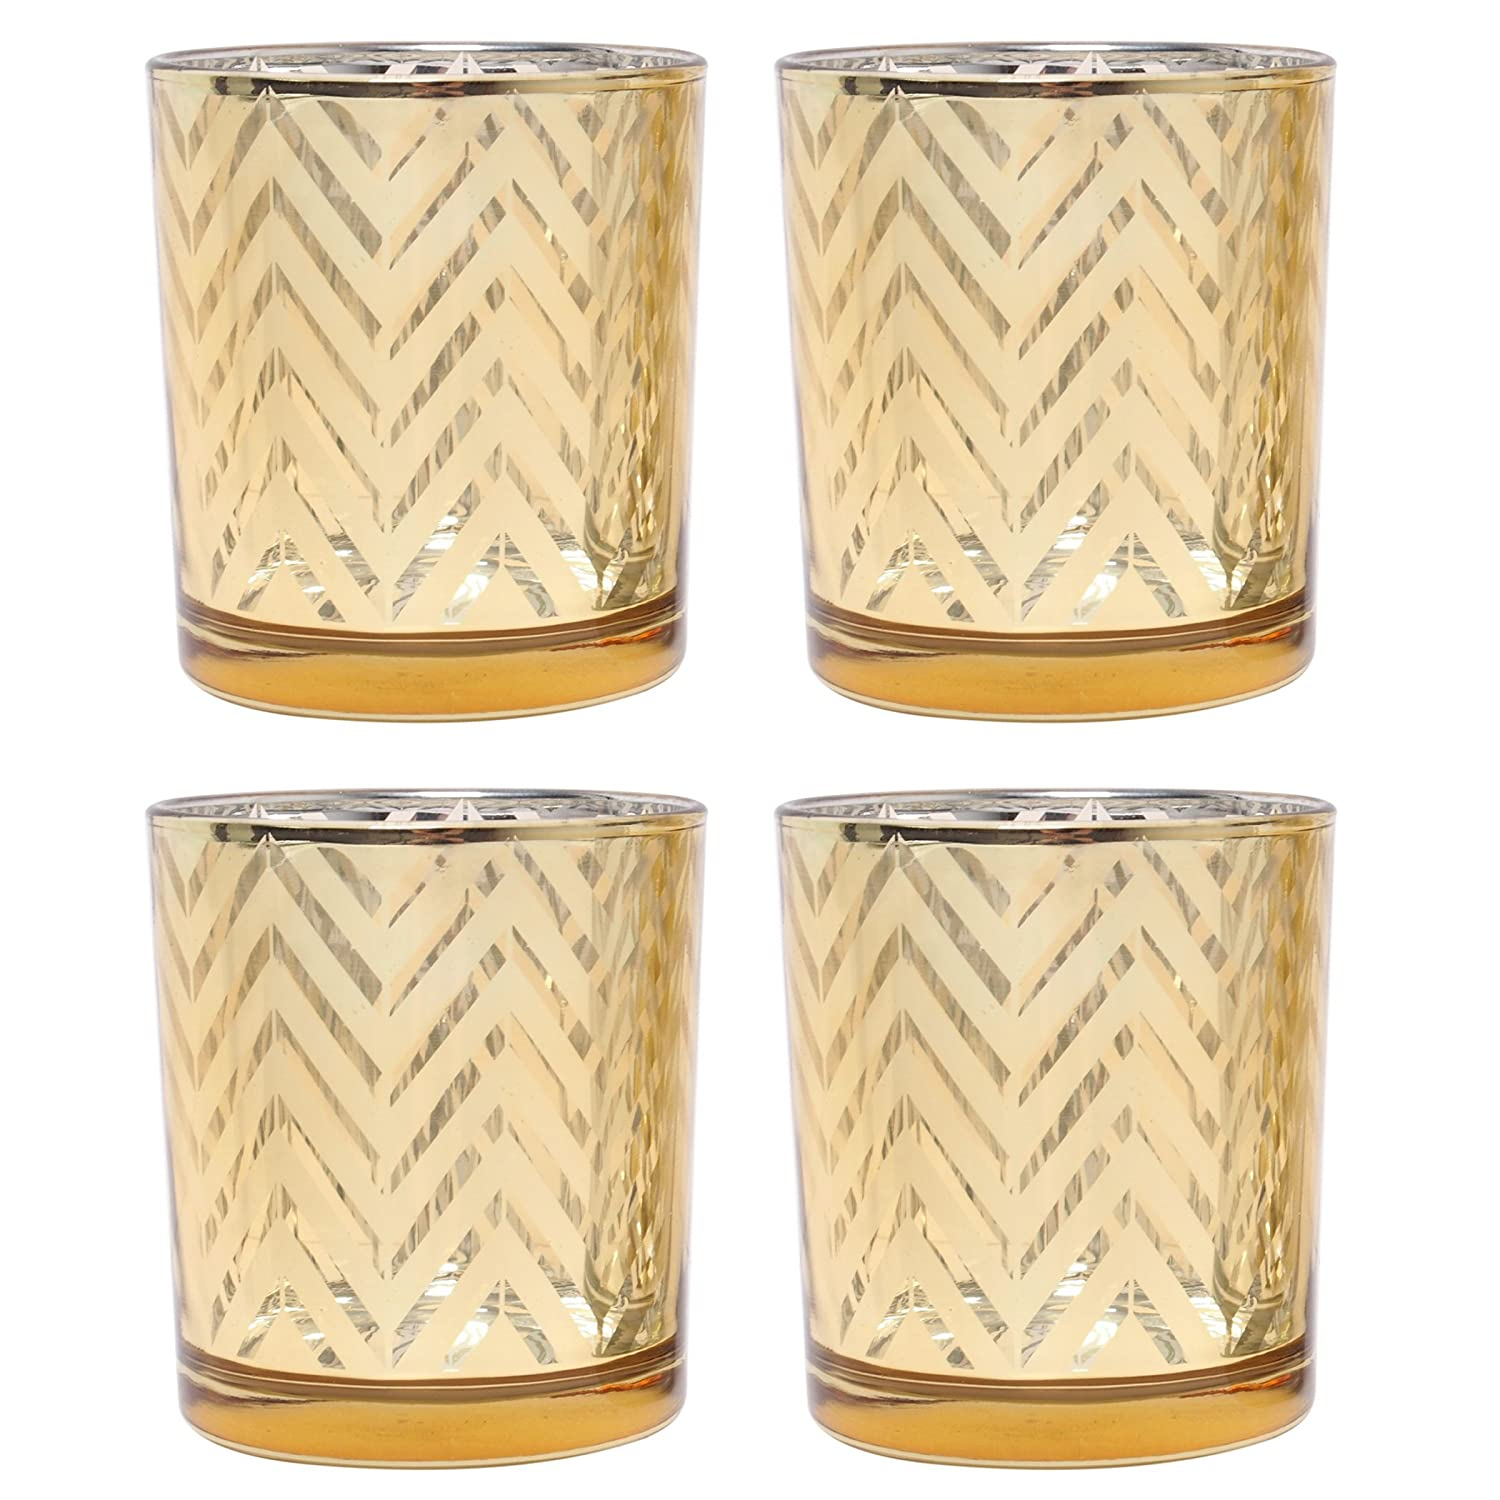 Hosley's Set of 4 Gold Glass Tealight Holders - 3.15 High. great for weddings, party, gifts, spa etc. HG Global AMZ-G97050WZ-4-EA